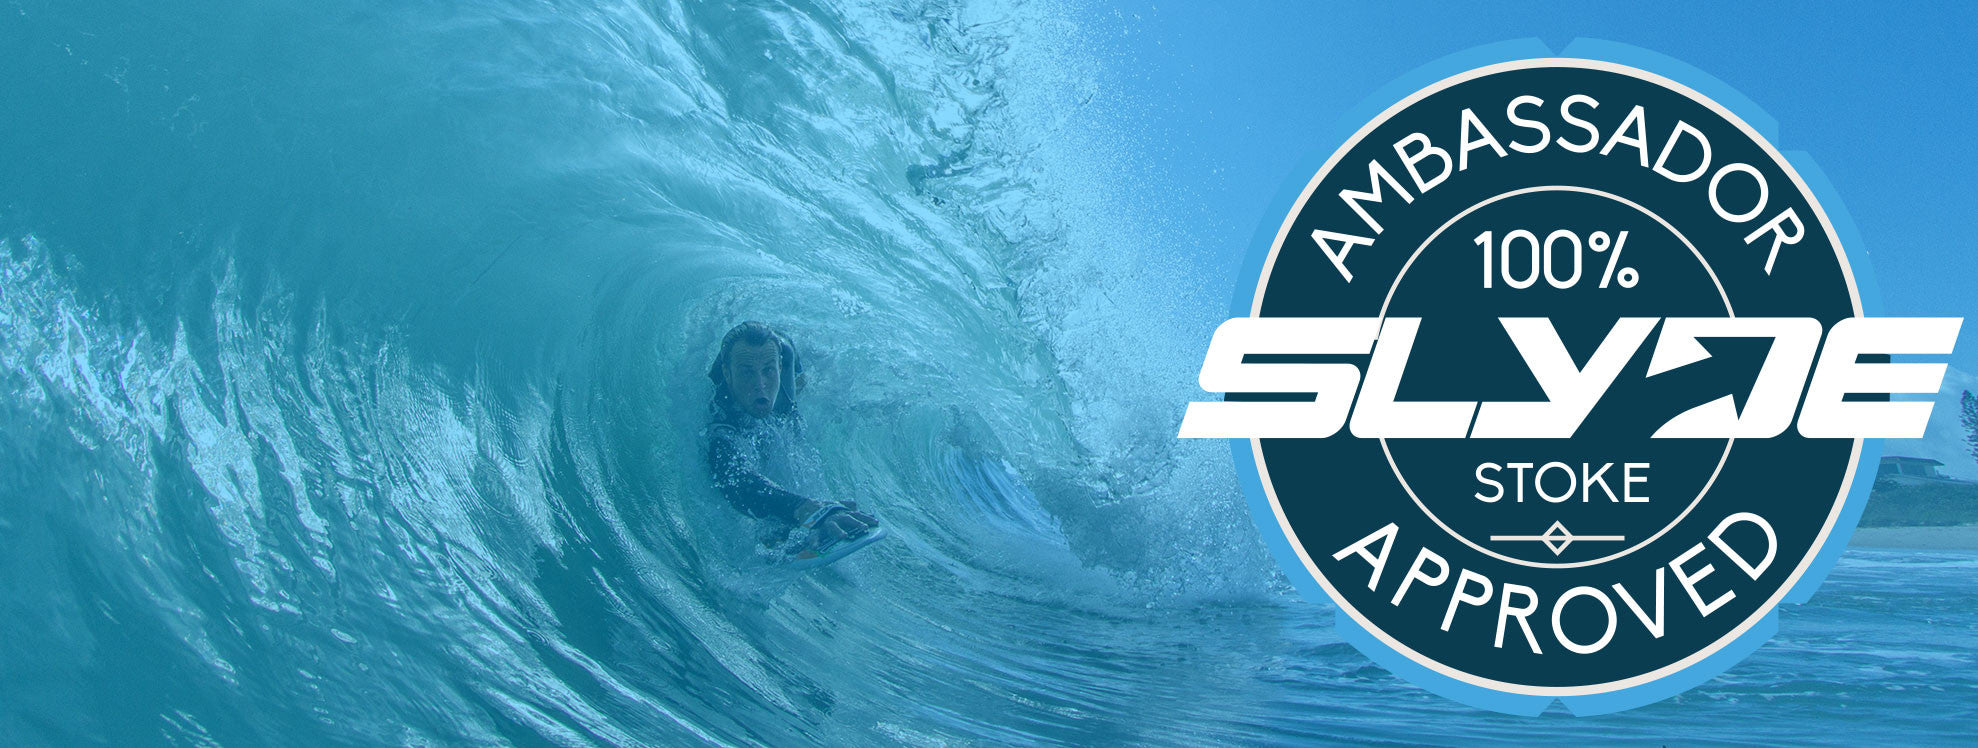 Slyde Handboards Launches Next Level Ambassador Program